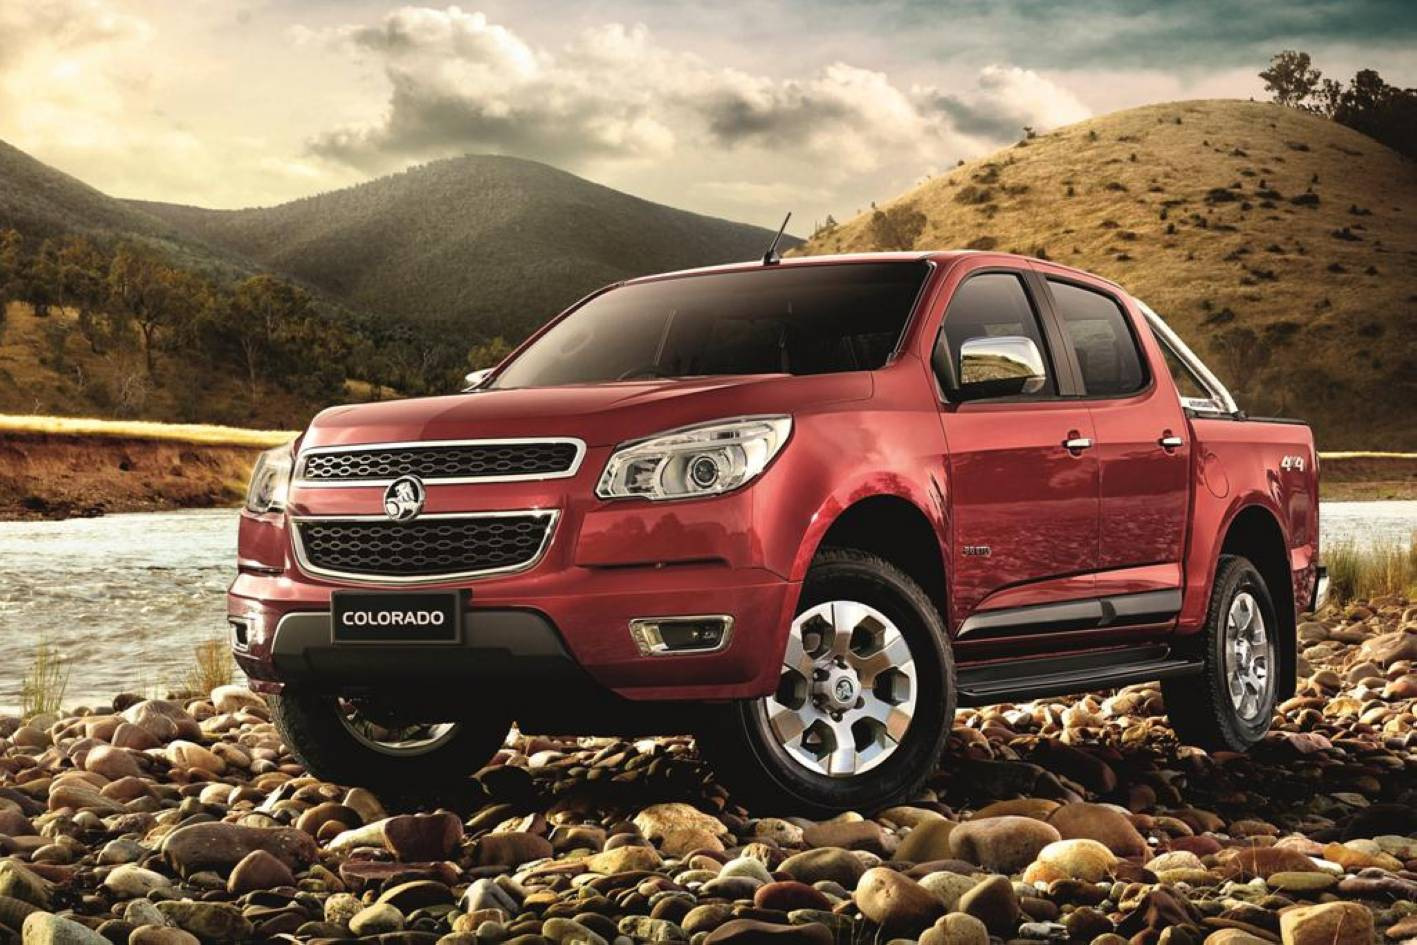 2012 Holden Colorado #1